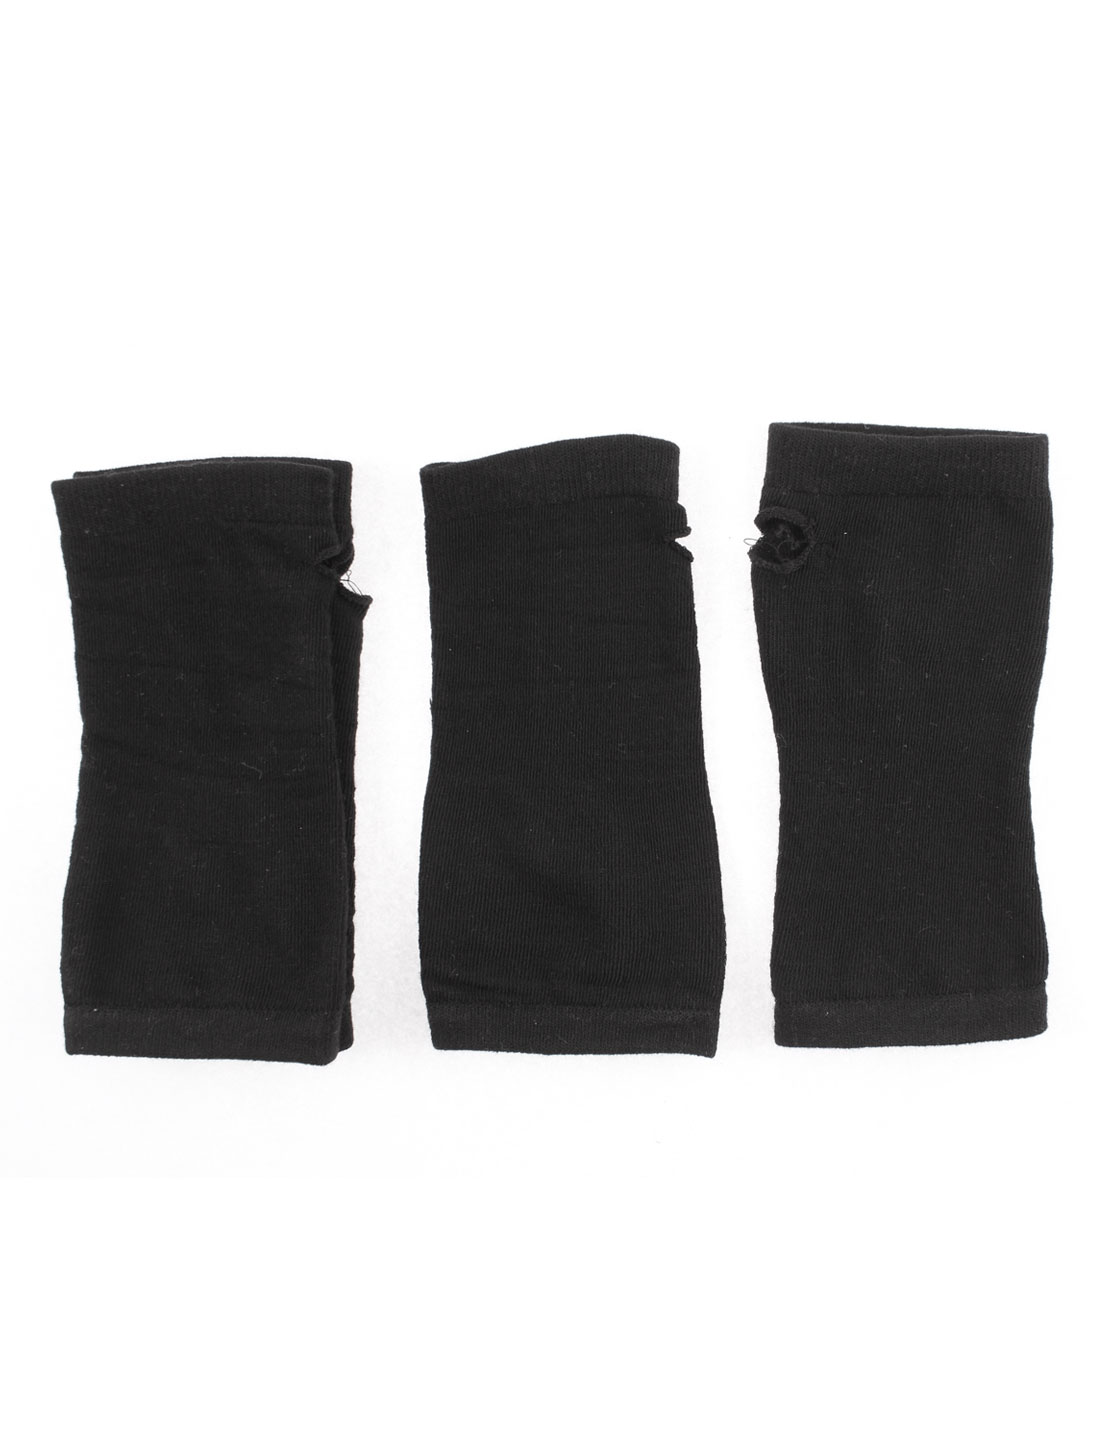 Lady Acrylic Fingerless Arm Warmers Sleeves Knit Gloves Black 2 Pairs